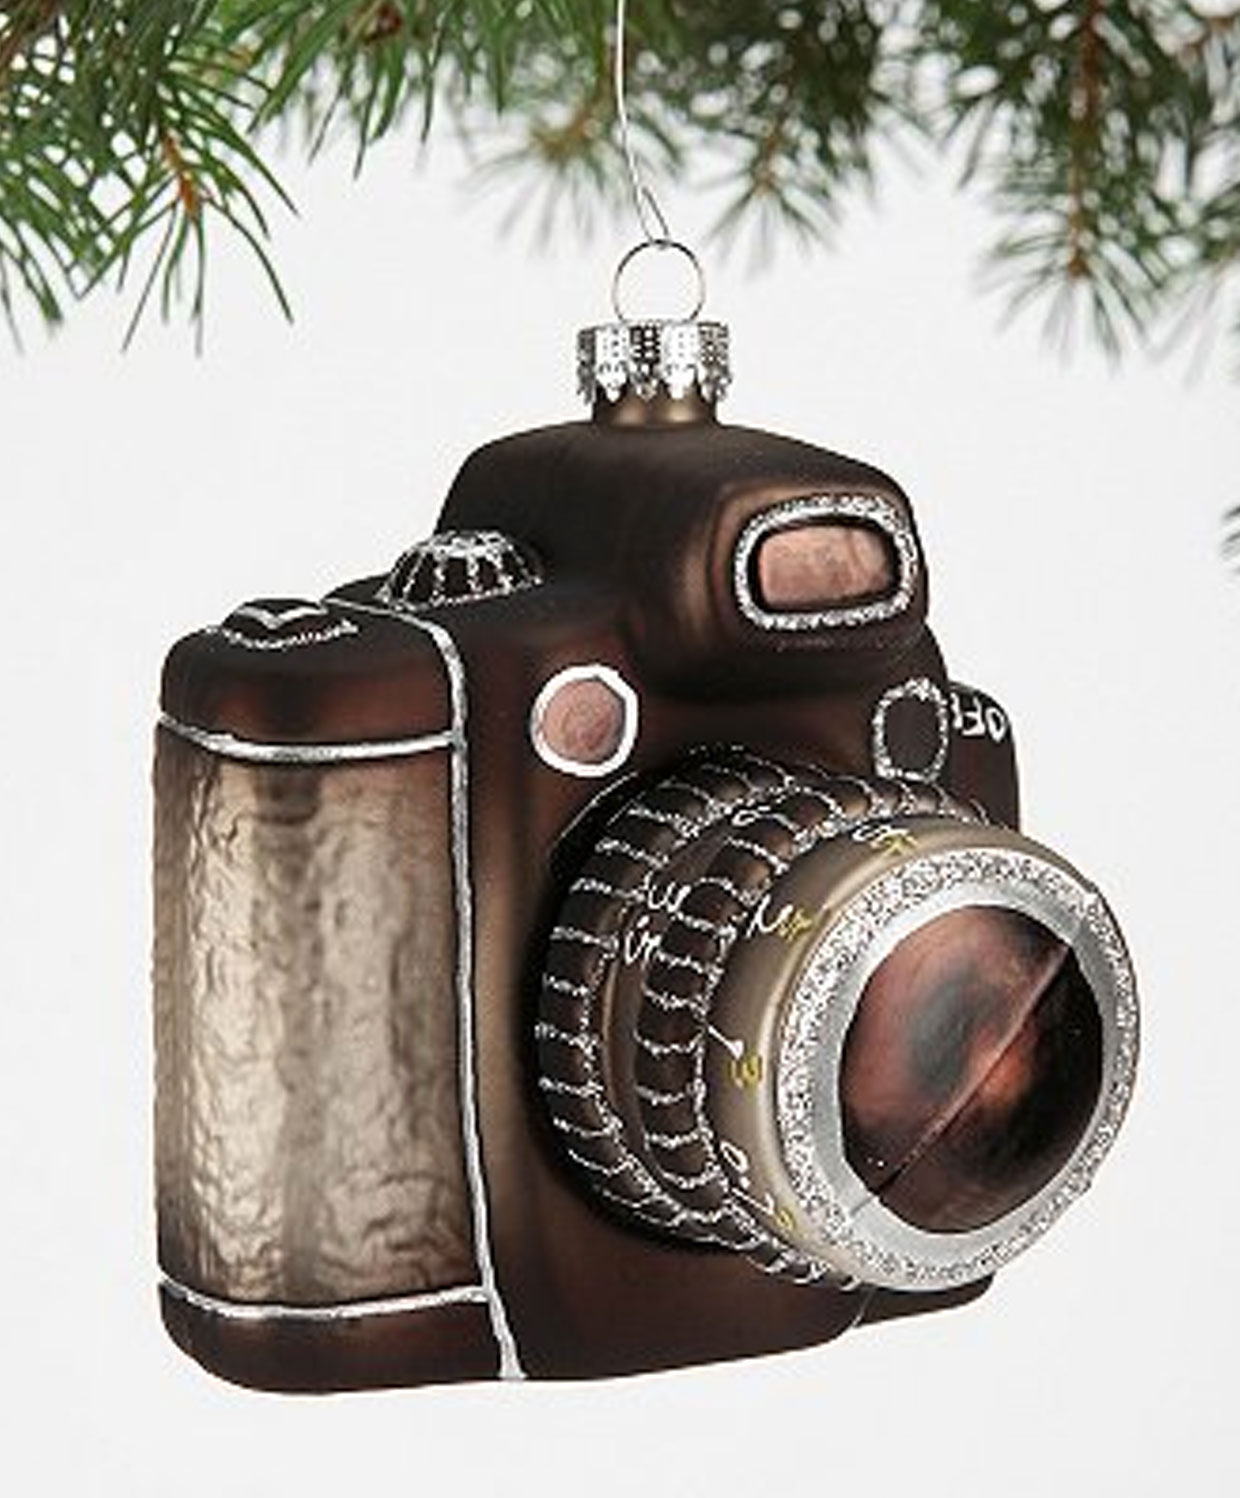 Blown glass camera urban outfitters 14